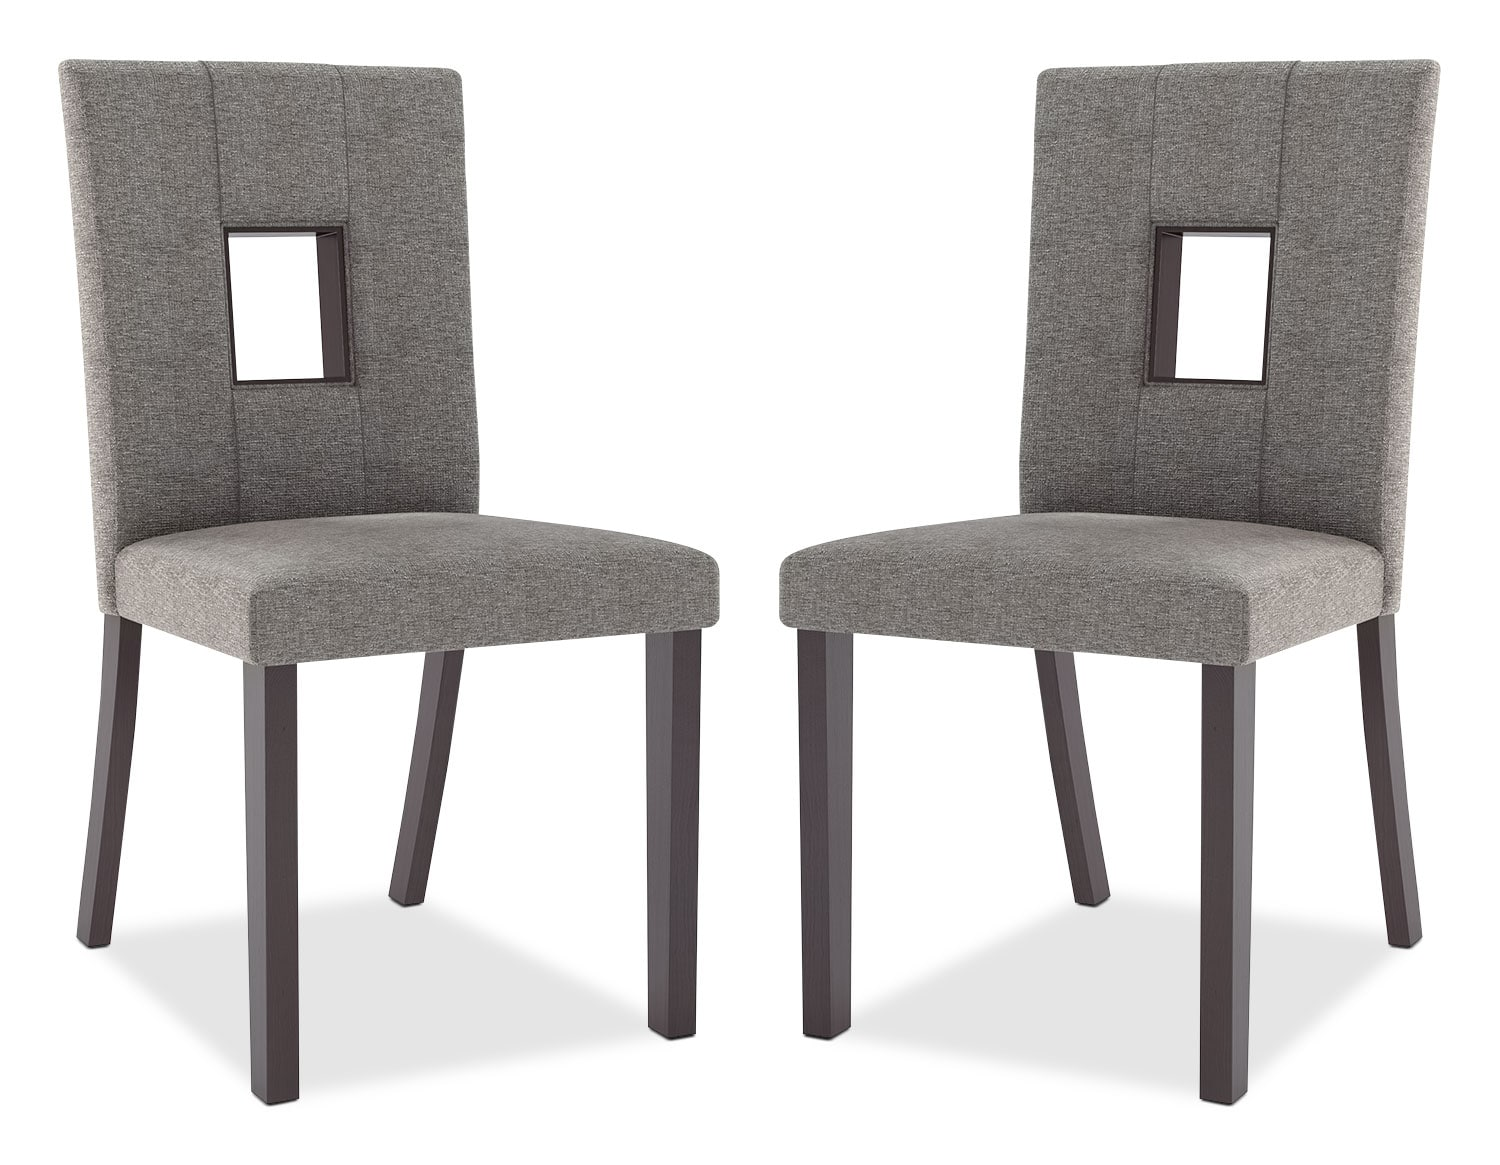 Dining Room Furniture - Bistro Counter-Height Dining Chair, Set of 2 – Grey